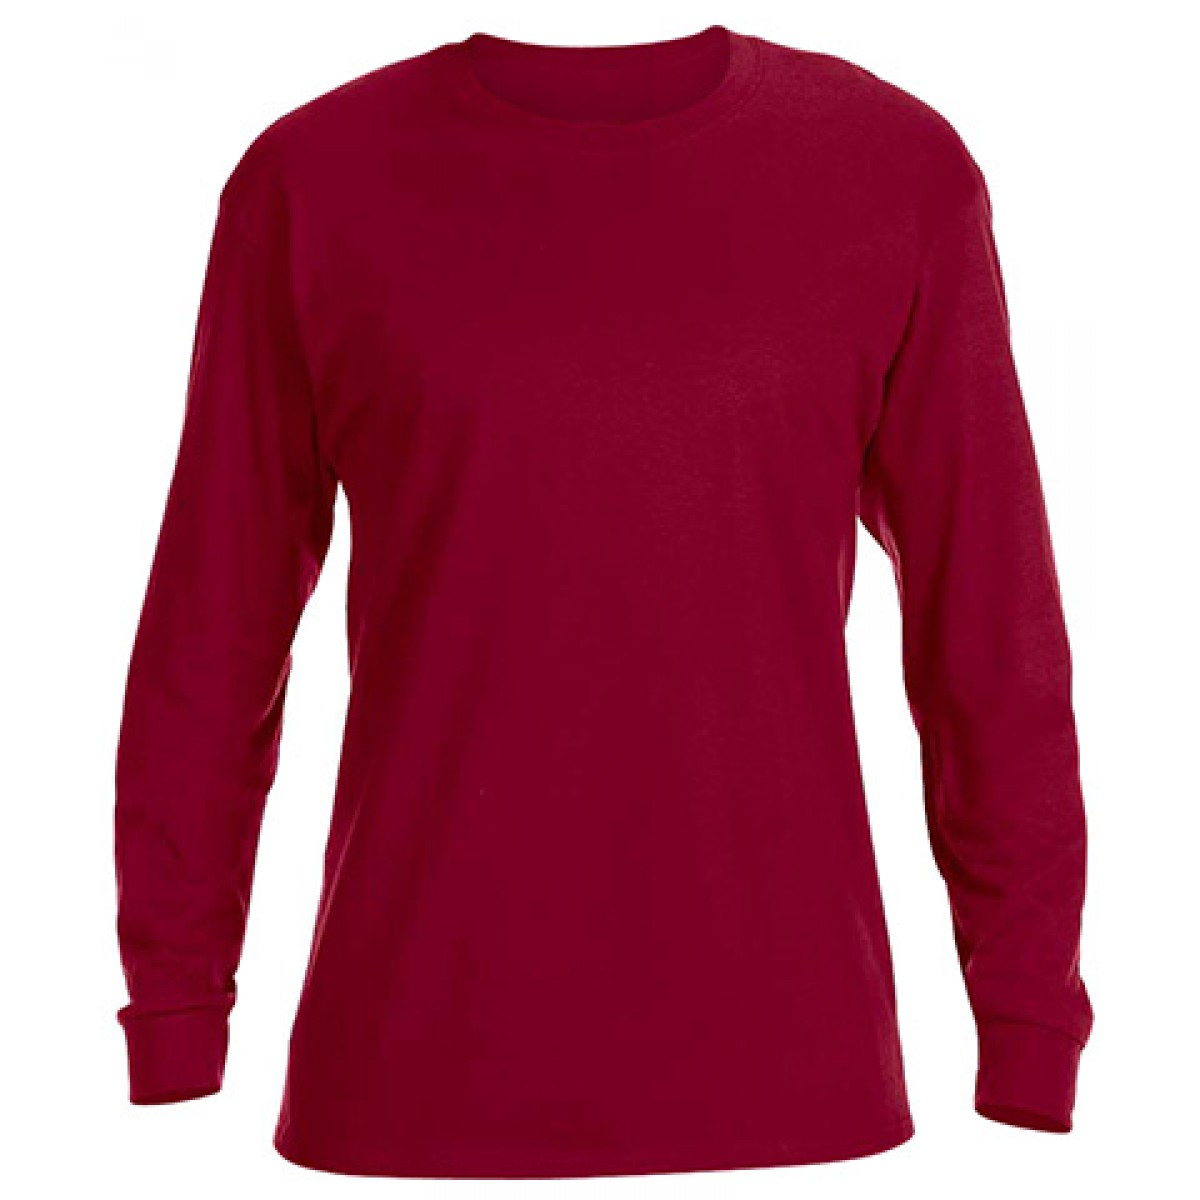 Basic Long Sleeve Crew Neck -Cardinal Red-S